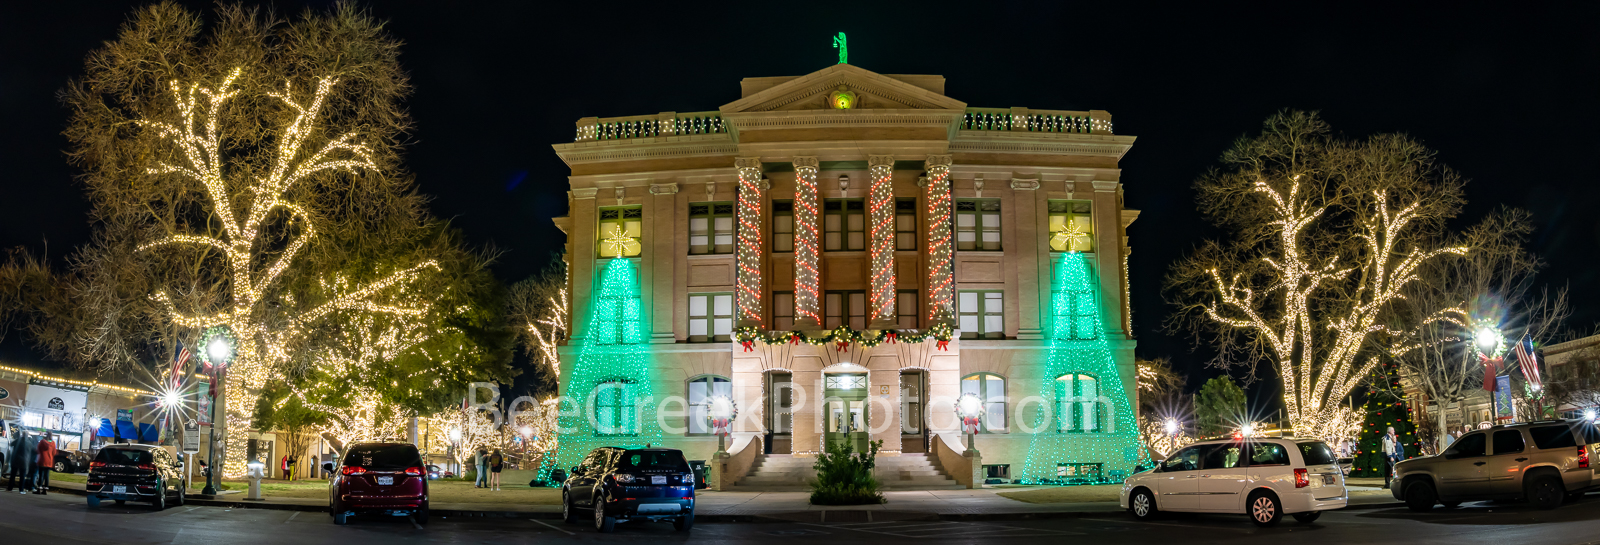 Georgetown Texas Christmas Pano - Christmas time are magical more so in some areas and Georgetown downtown square and courthouse...